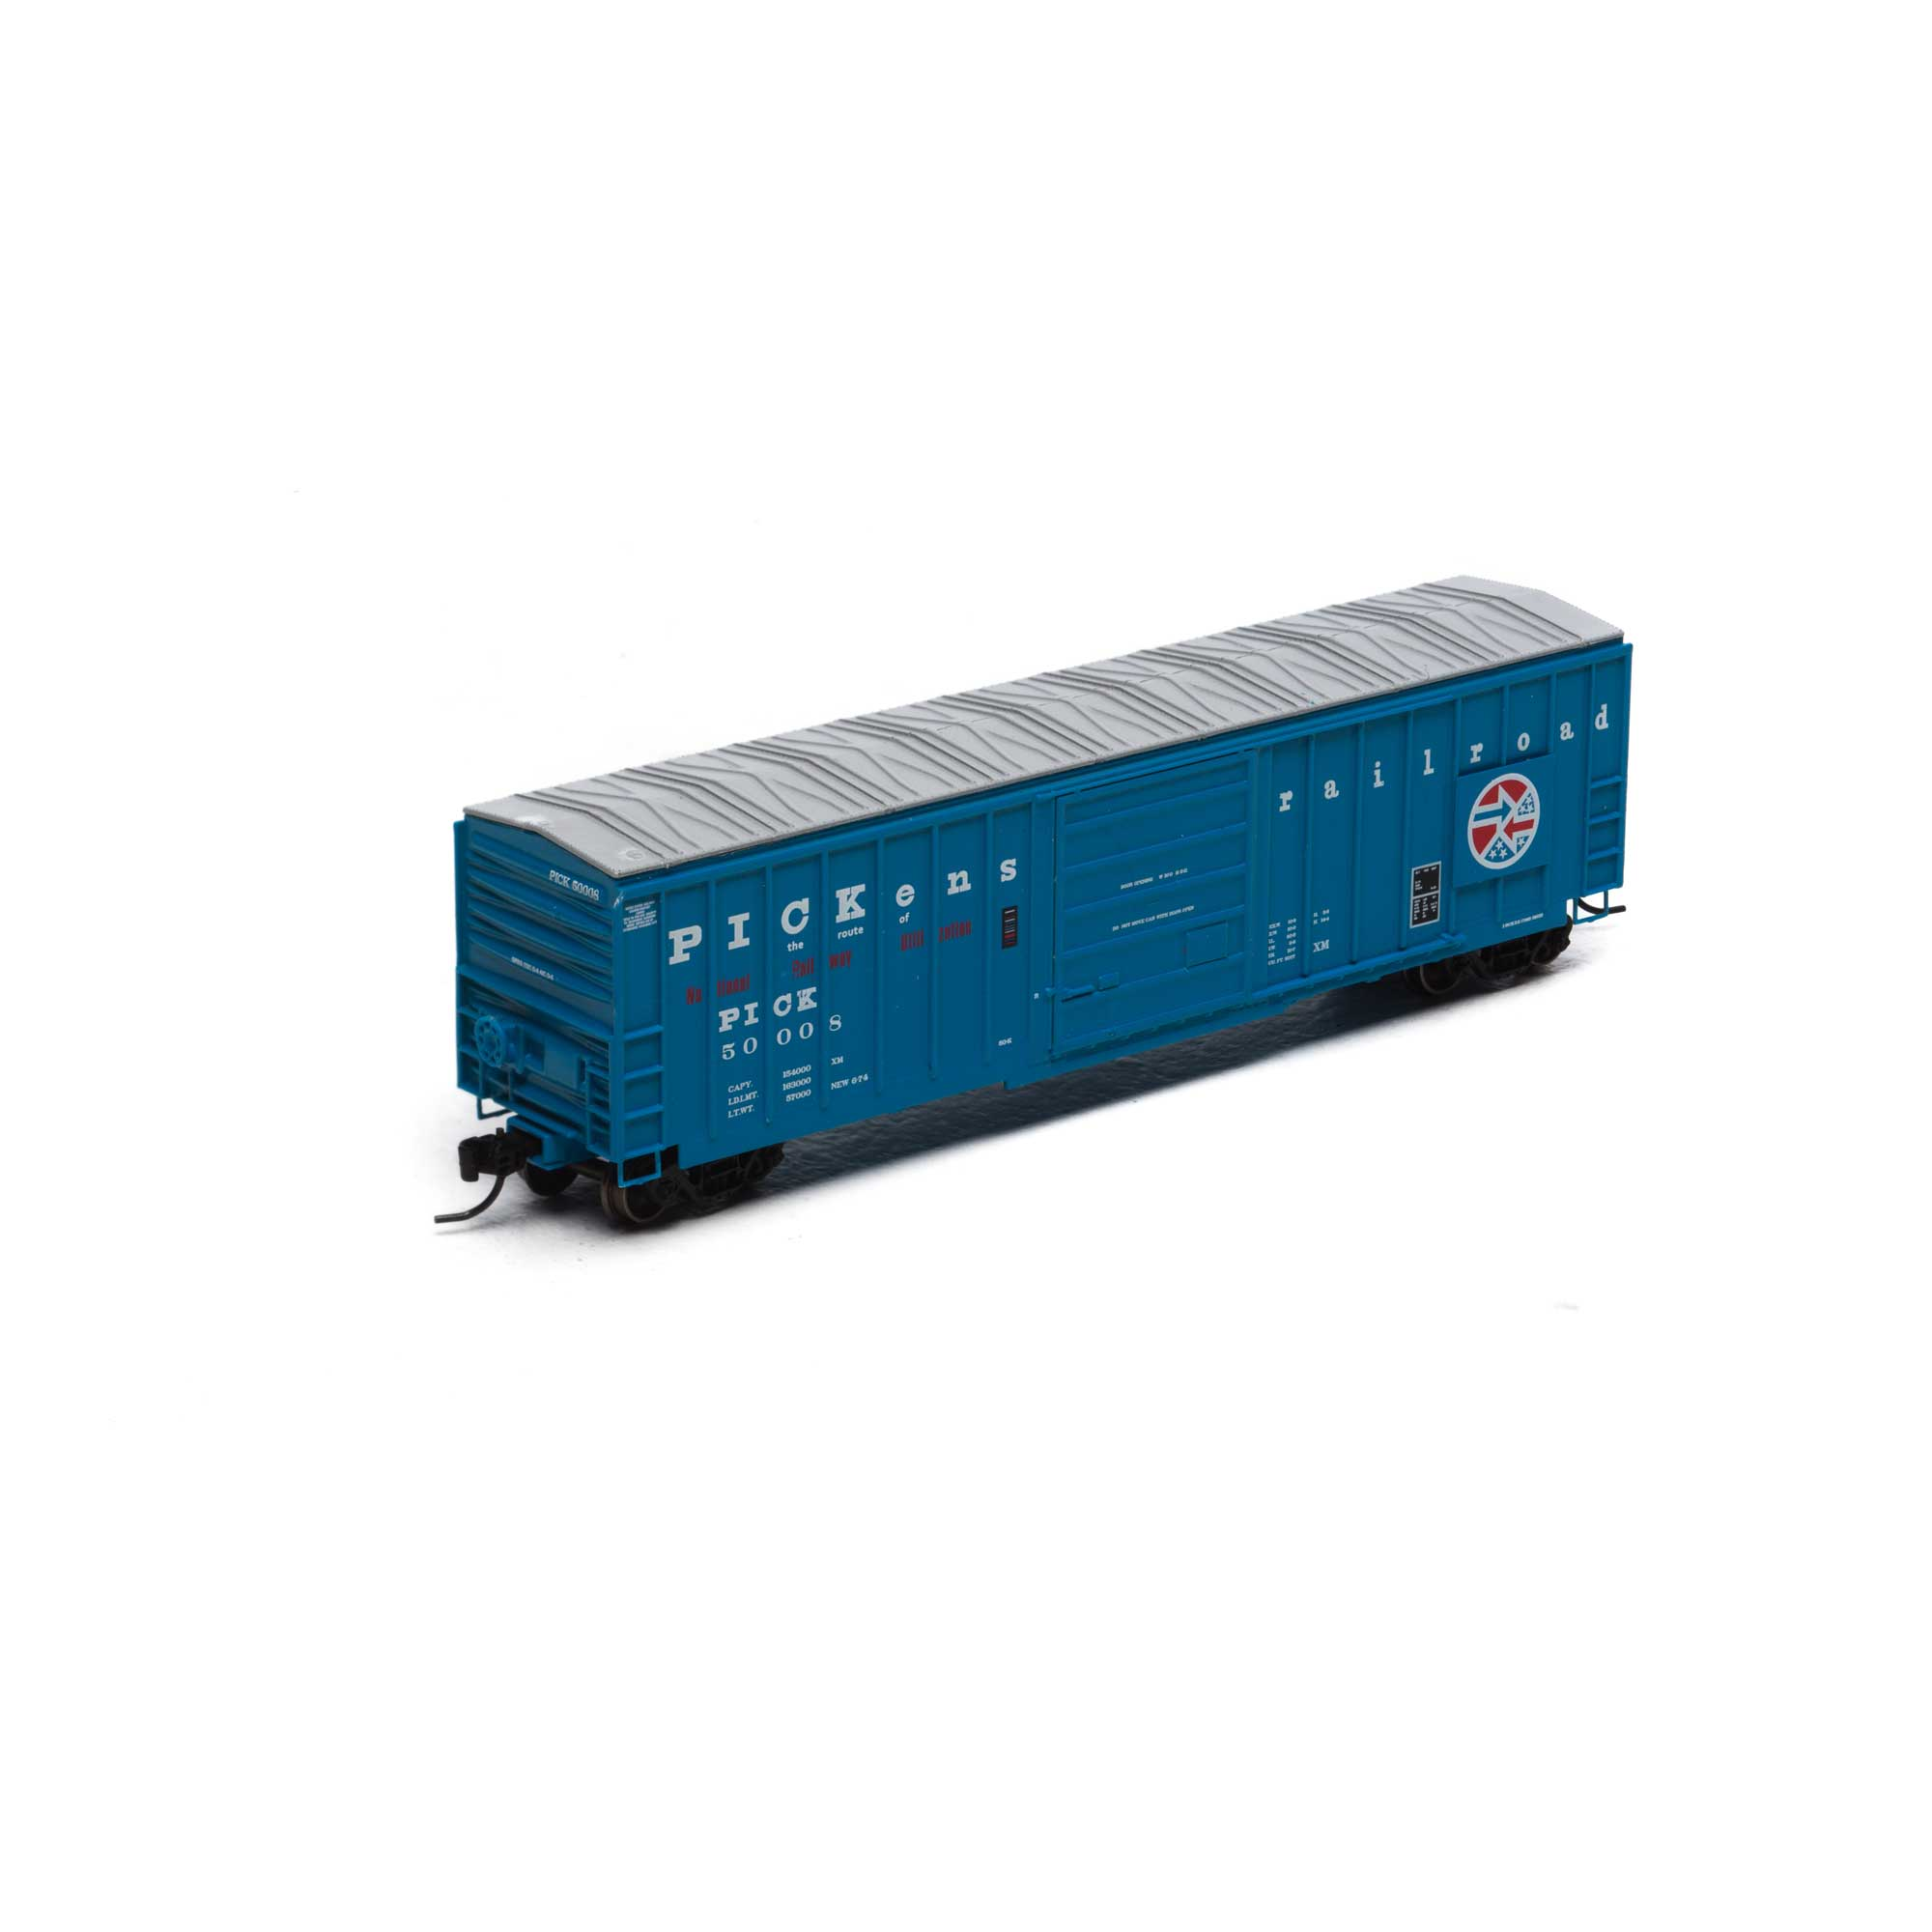 N Scale - Athearn - 22980 - Boxcar, 50 Foot, SIECO - Pickens - 50008